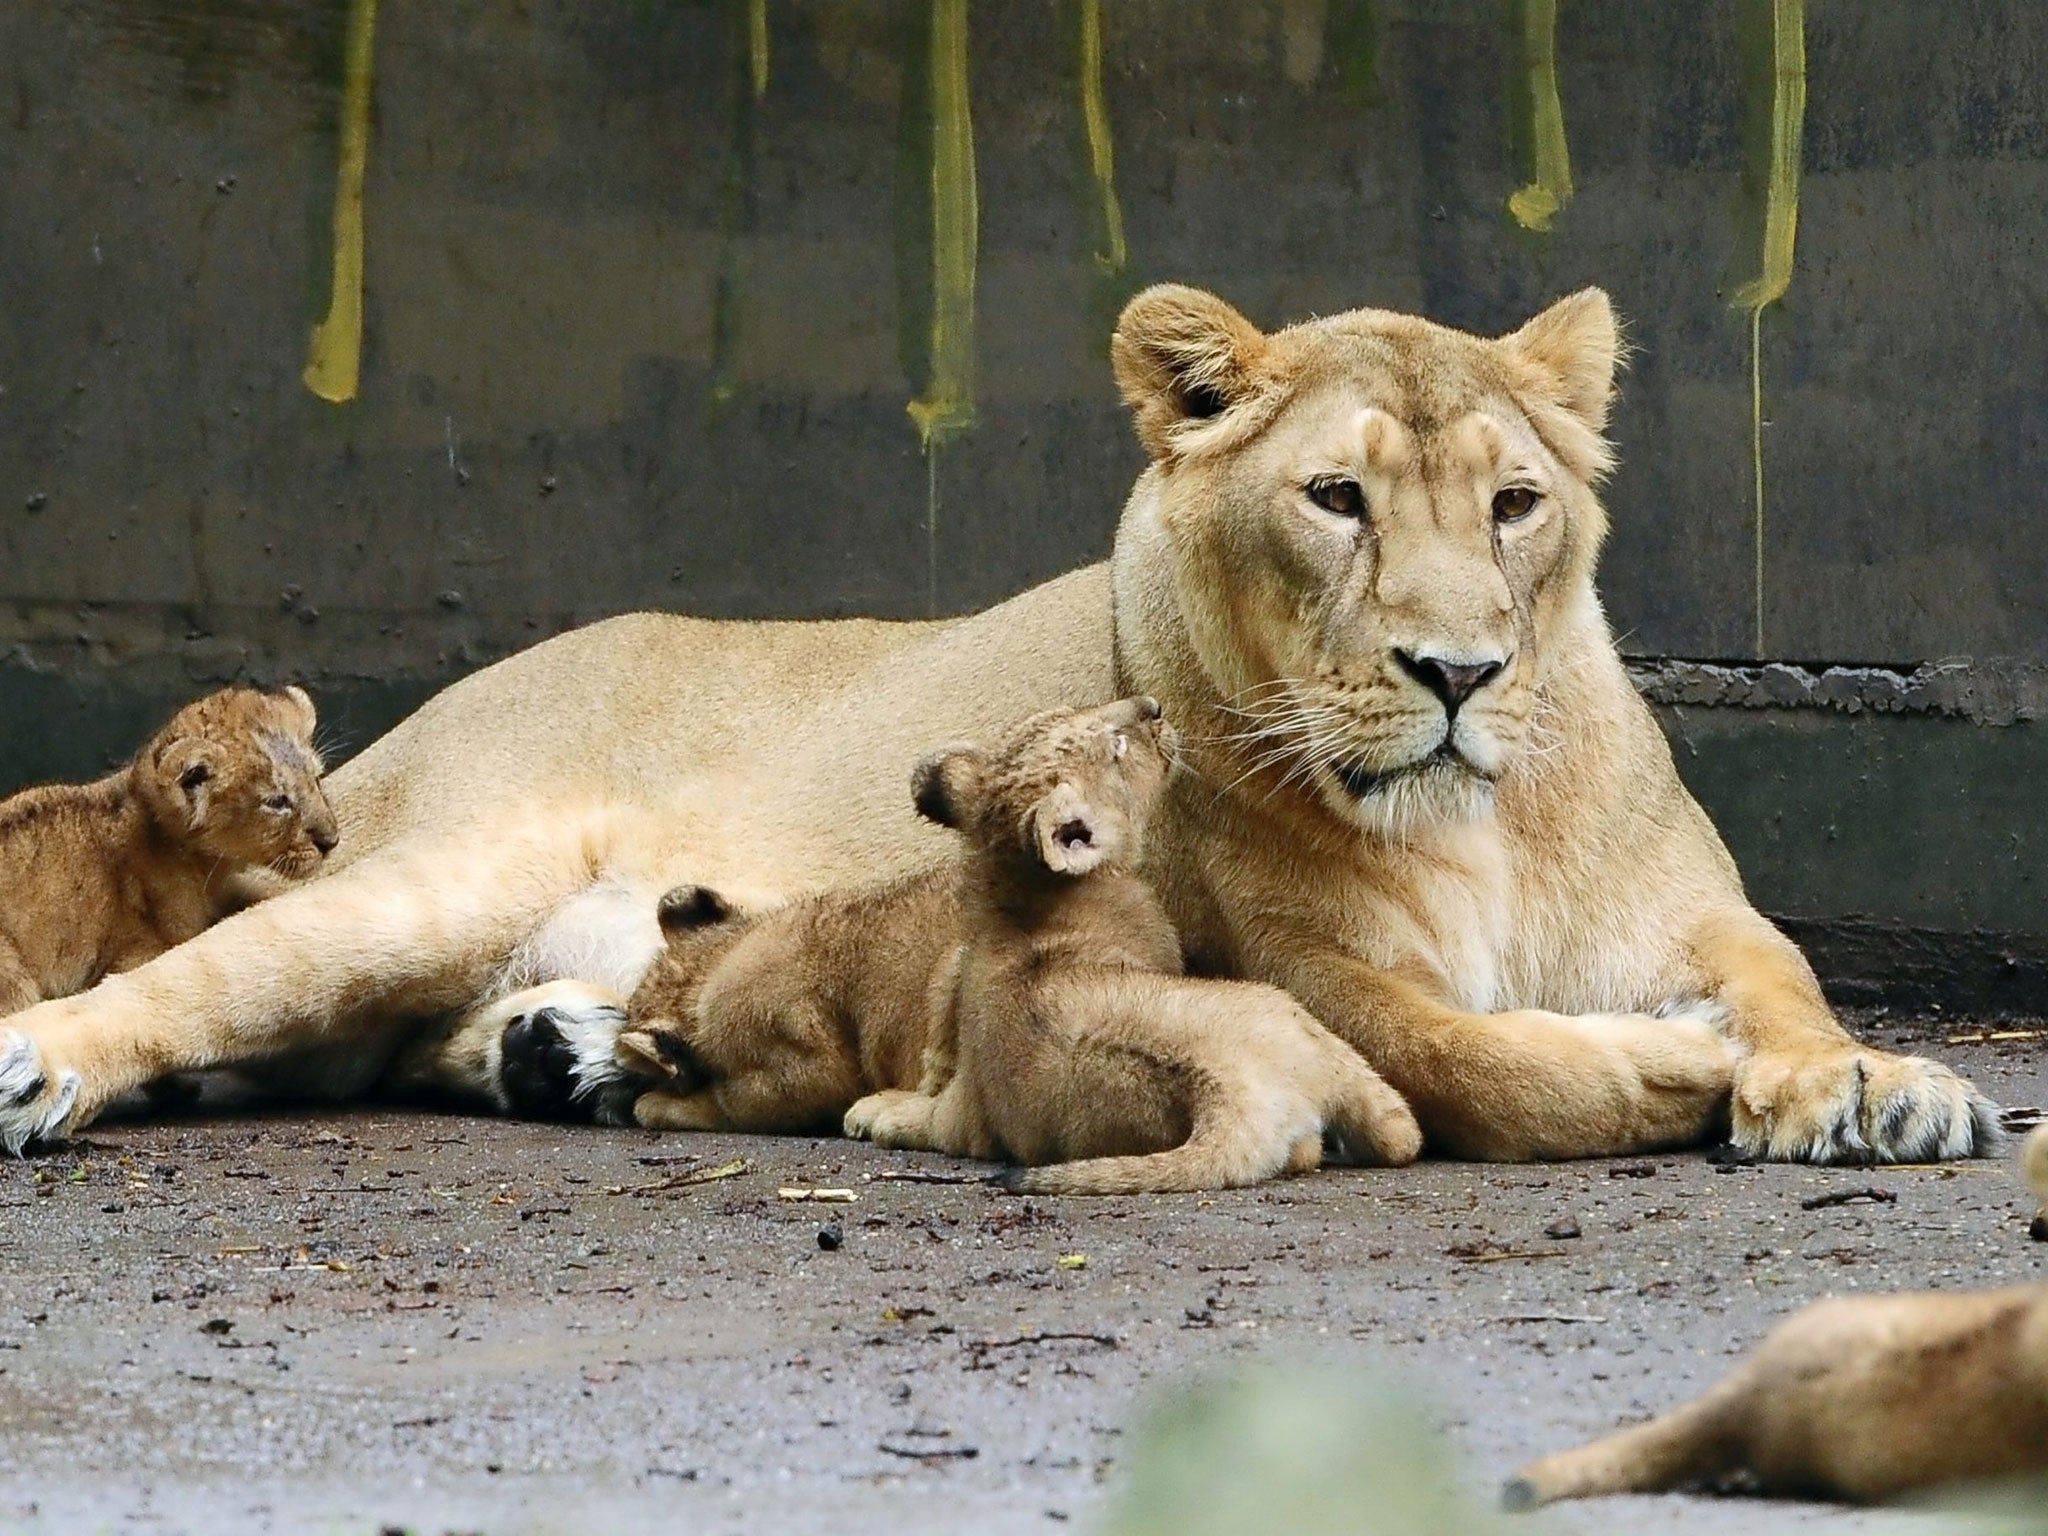 Lion killed at Belgium's Planckendael zoo after escaping from enclosure